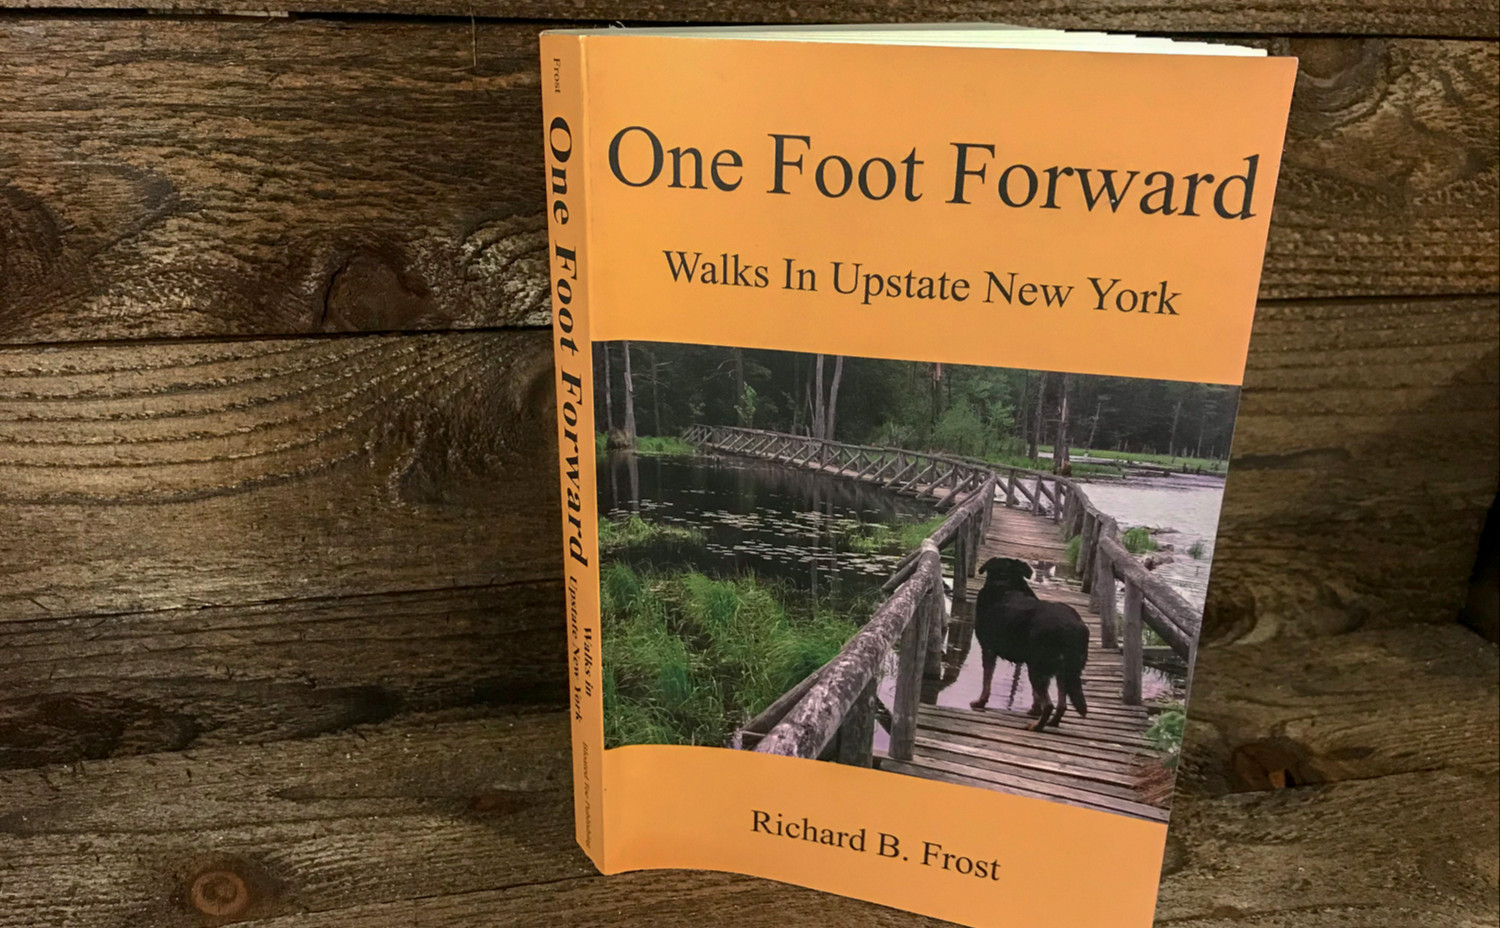 One Foot Forward: Walks in Upstate New York - Featured Image